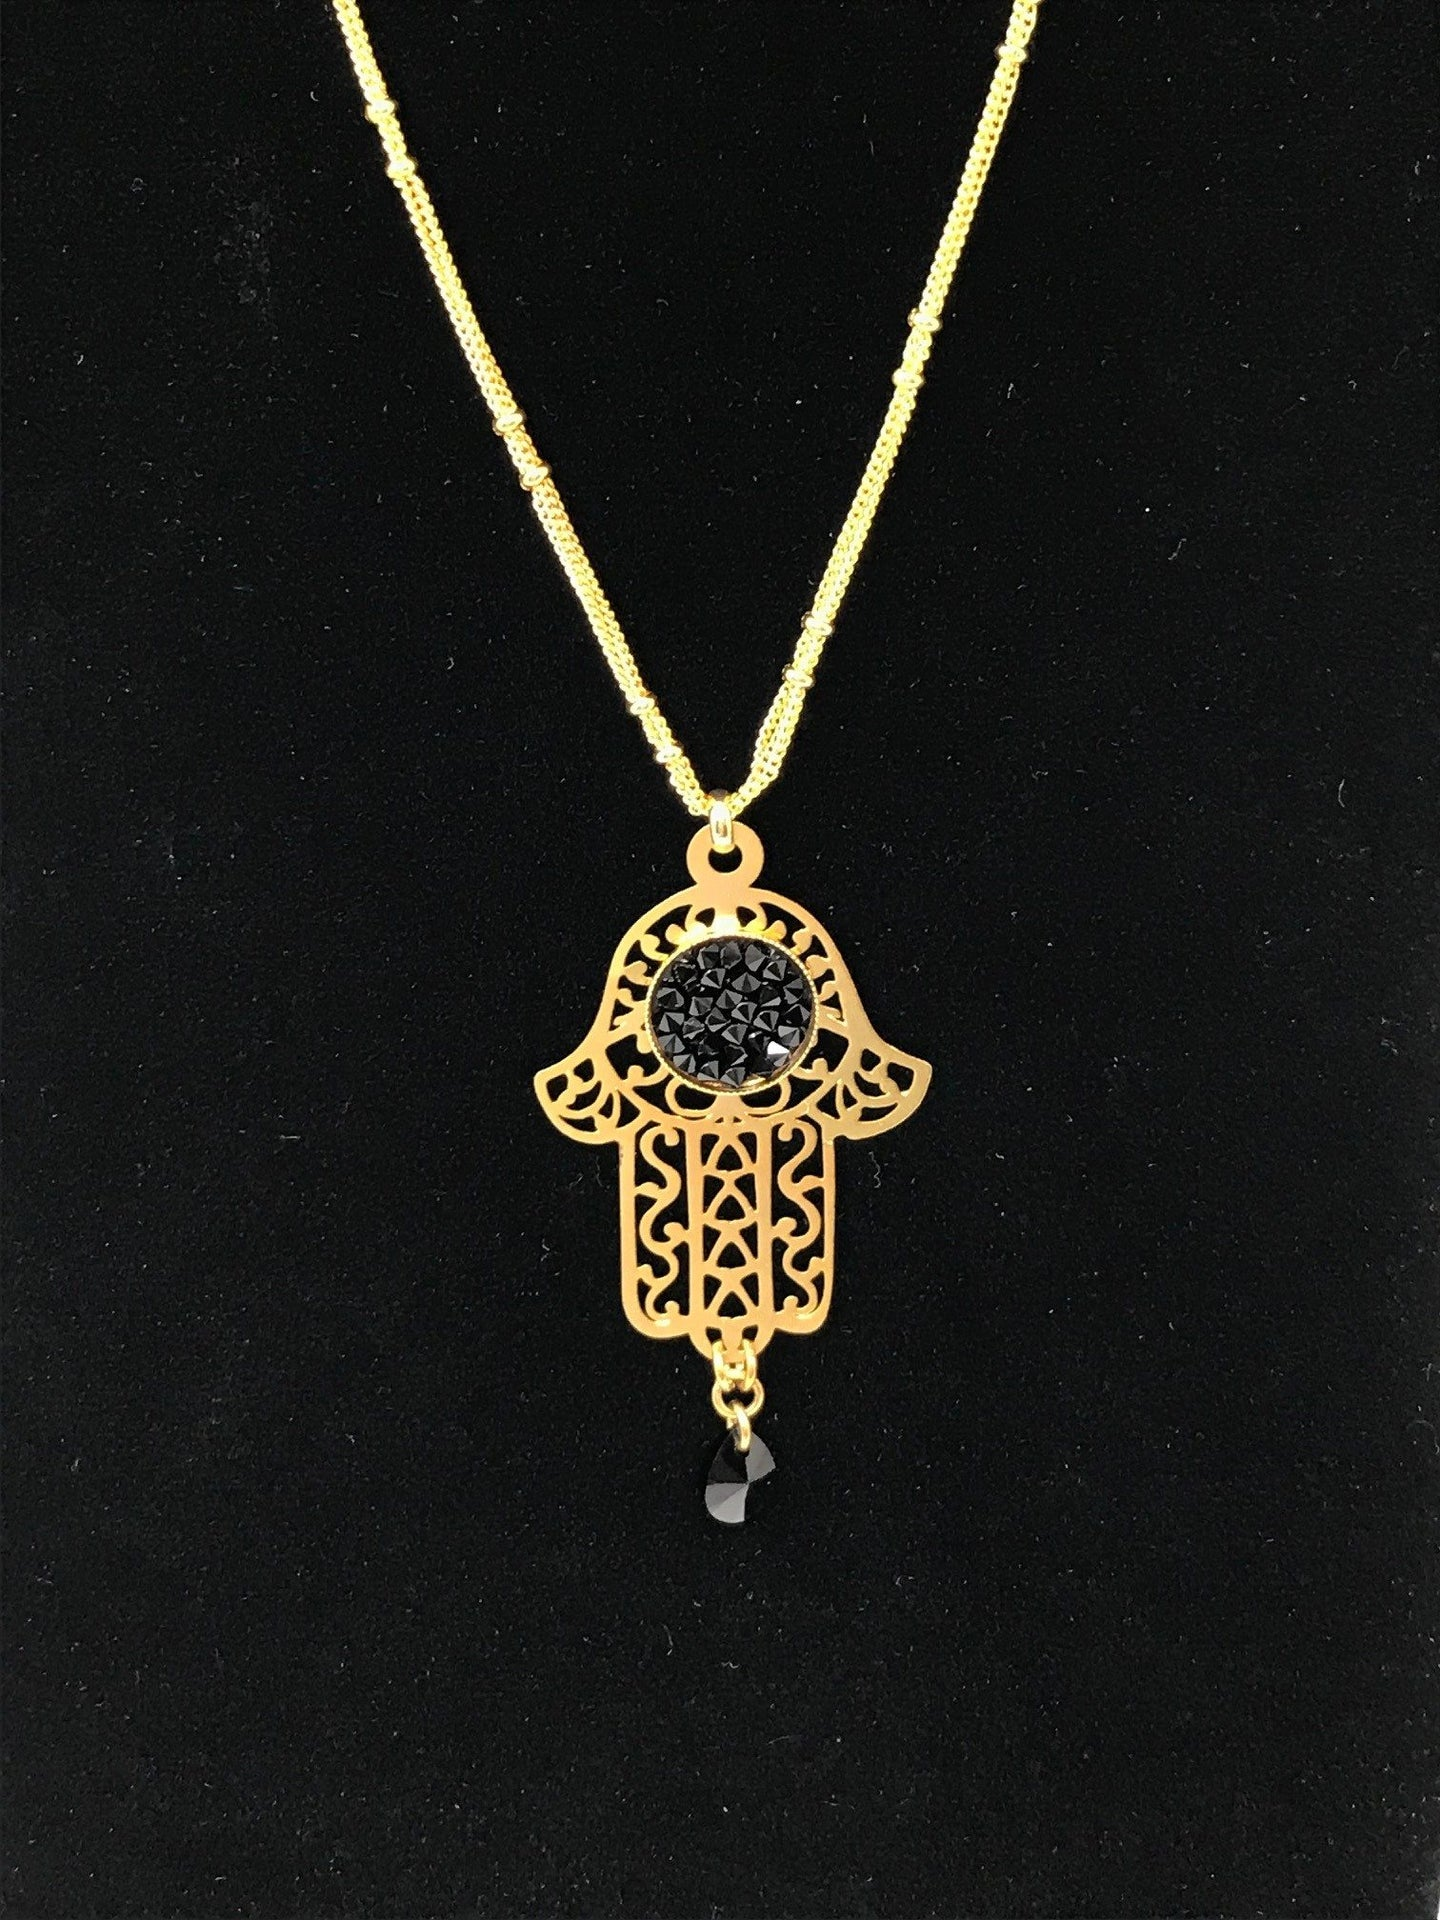 B-JWLD Gold Hamsa Amulet With Black Accent Necklace